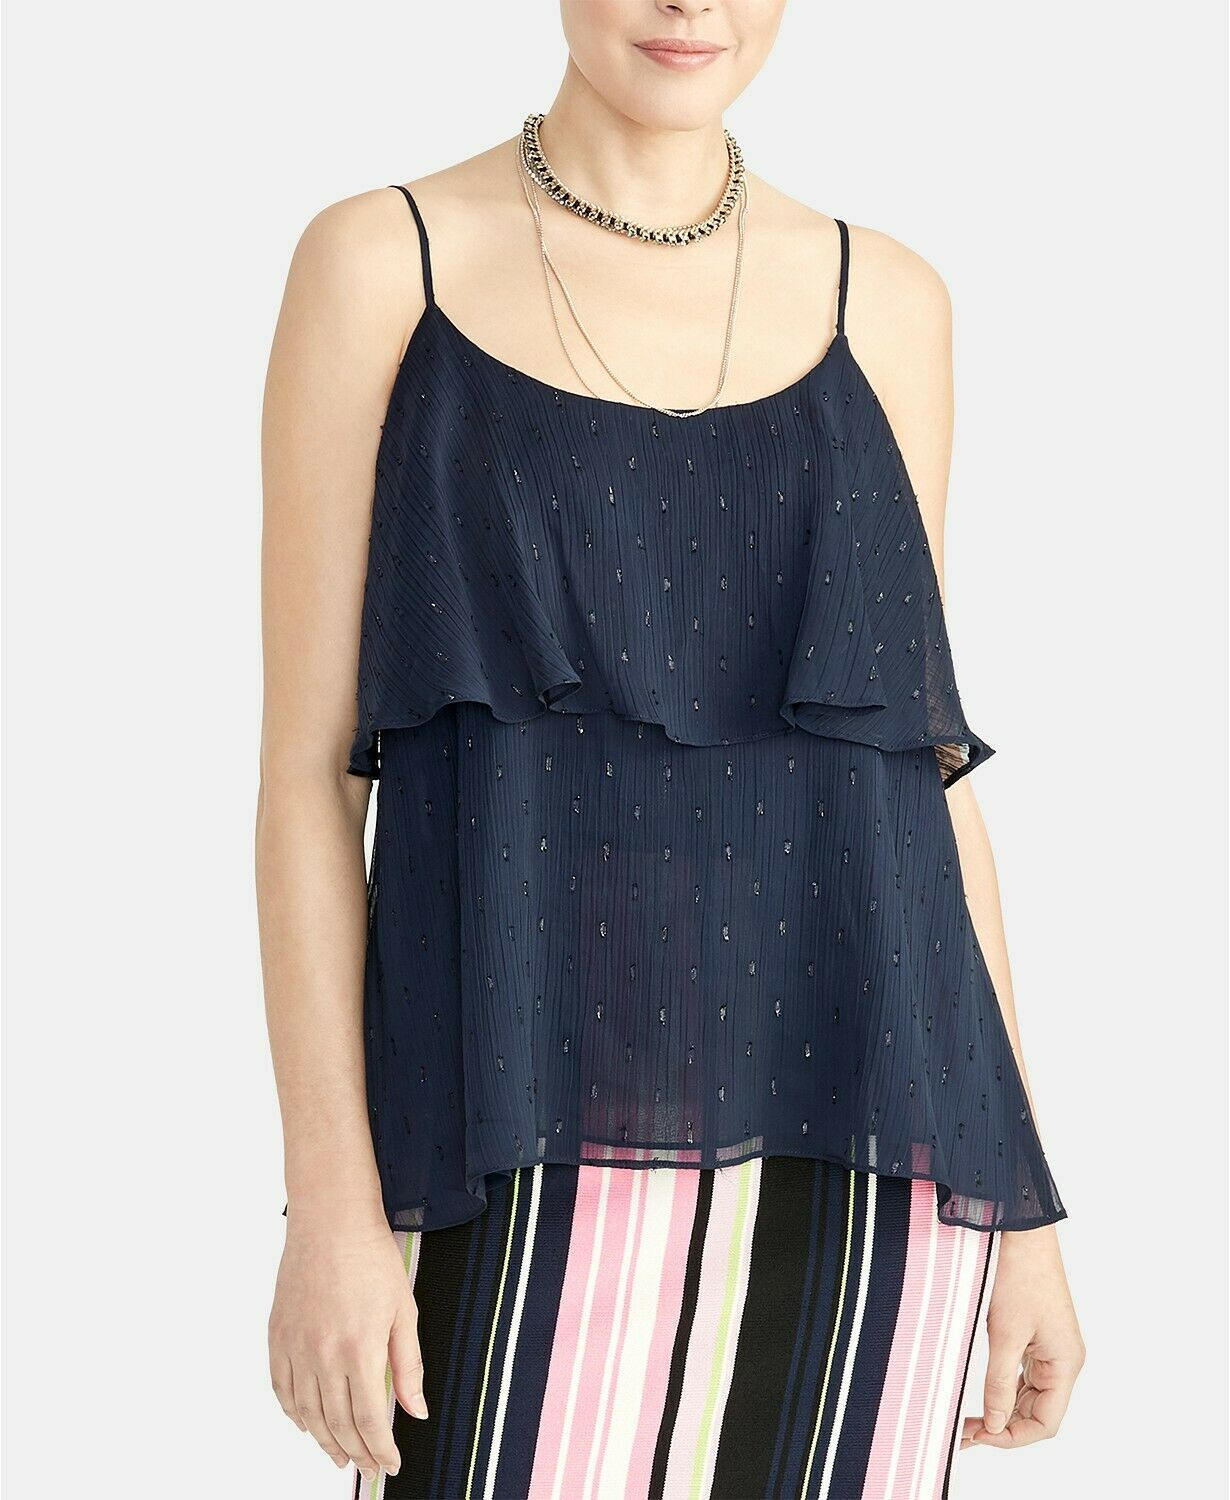 Primary image for Rachel Roy Women's True Navy Austen Tiered Camisole Top Blouse Size XL NWT $80